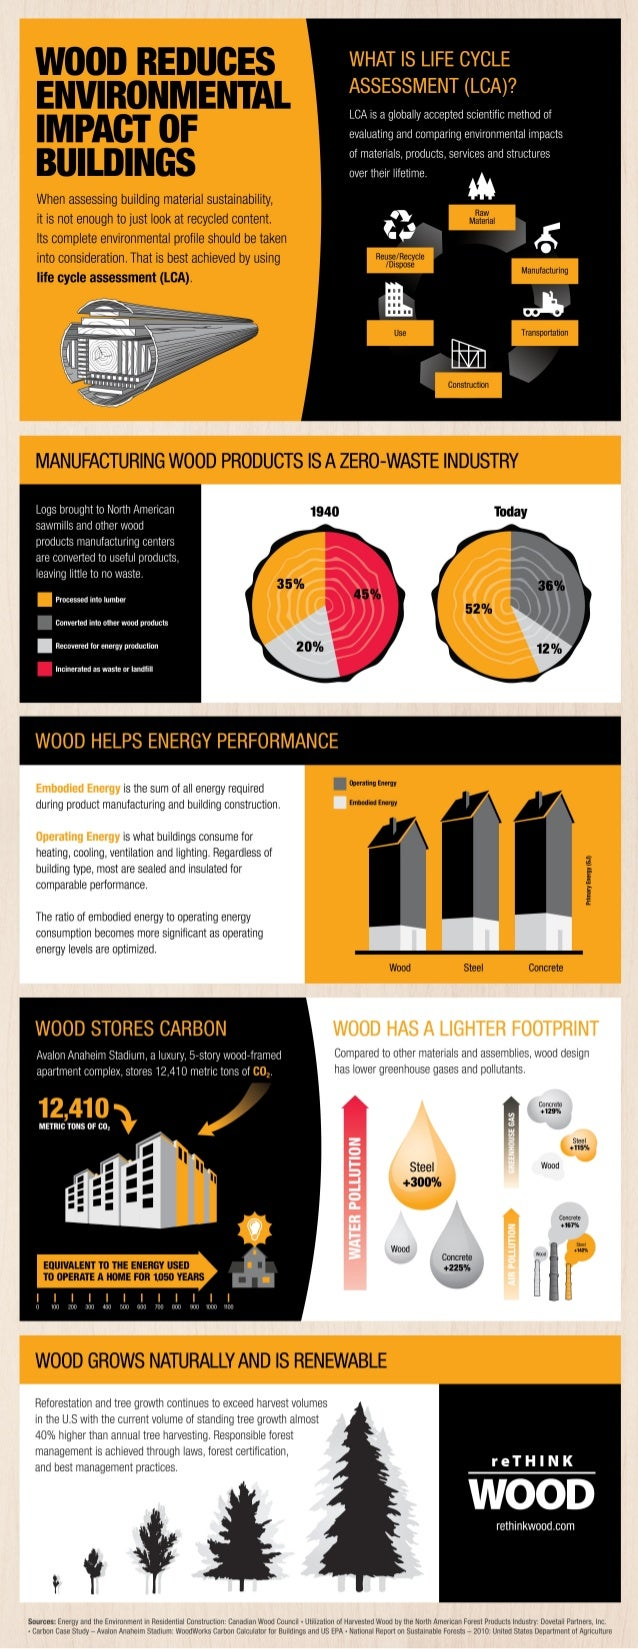 Wood Reduces the Environmental Impact of Buildings – Infographic